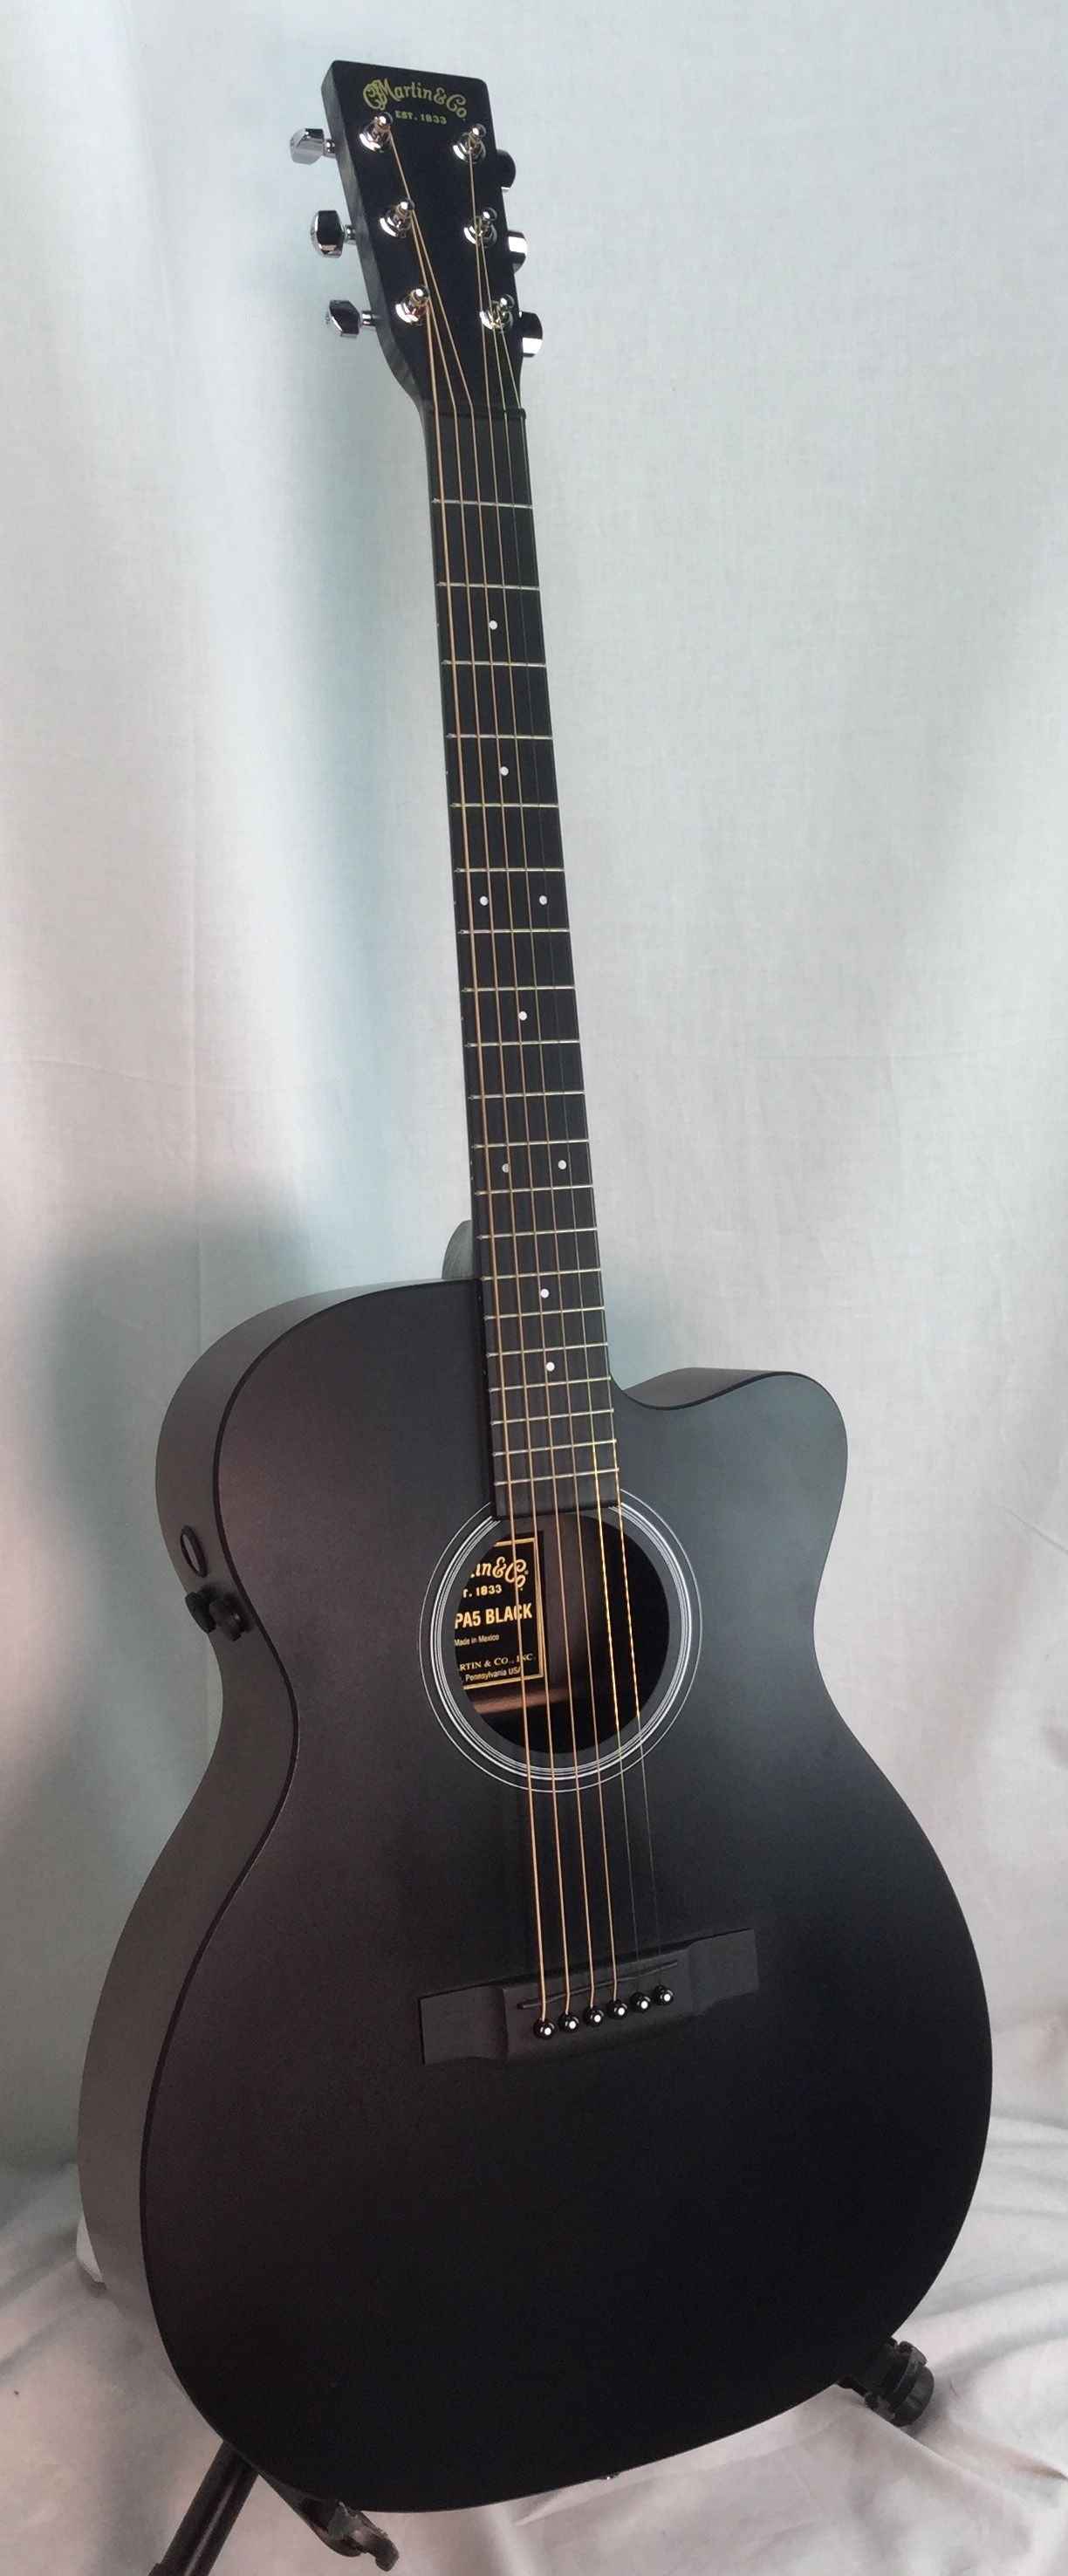 Martin Omcpa5 Black Westwood Music Tradition Since 1947 Acoustic Guitar For Sale Guitar Guitars For Sale